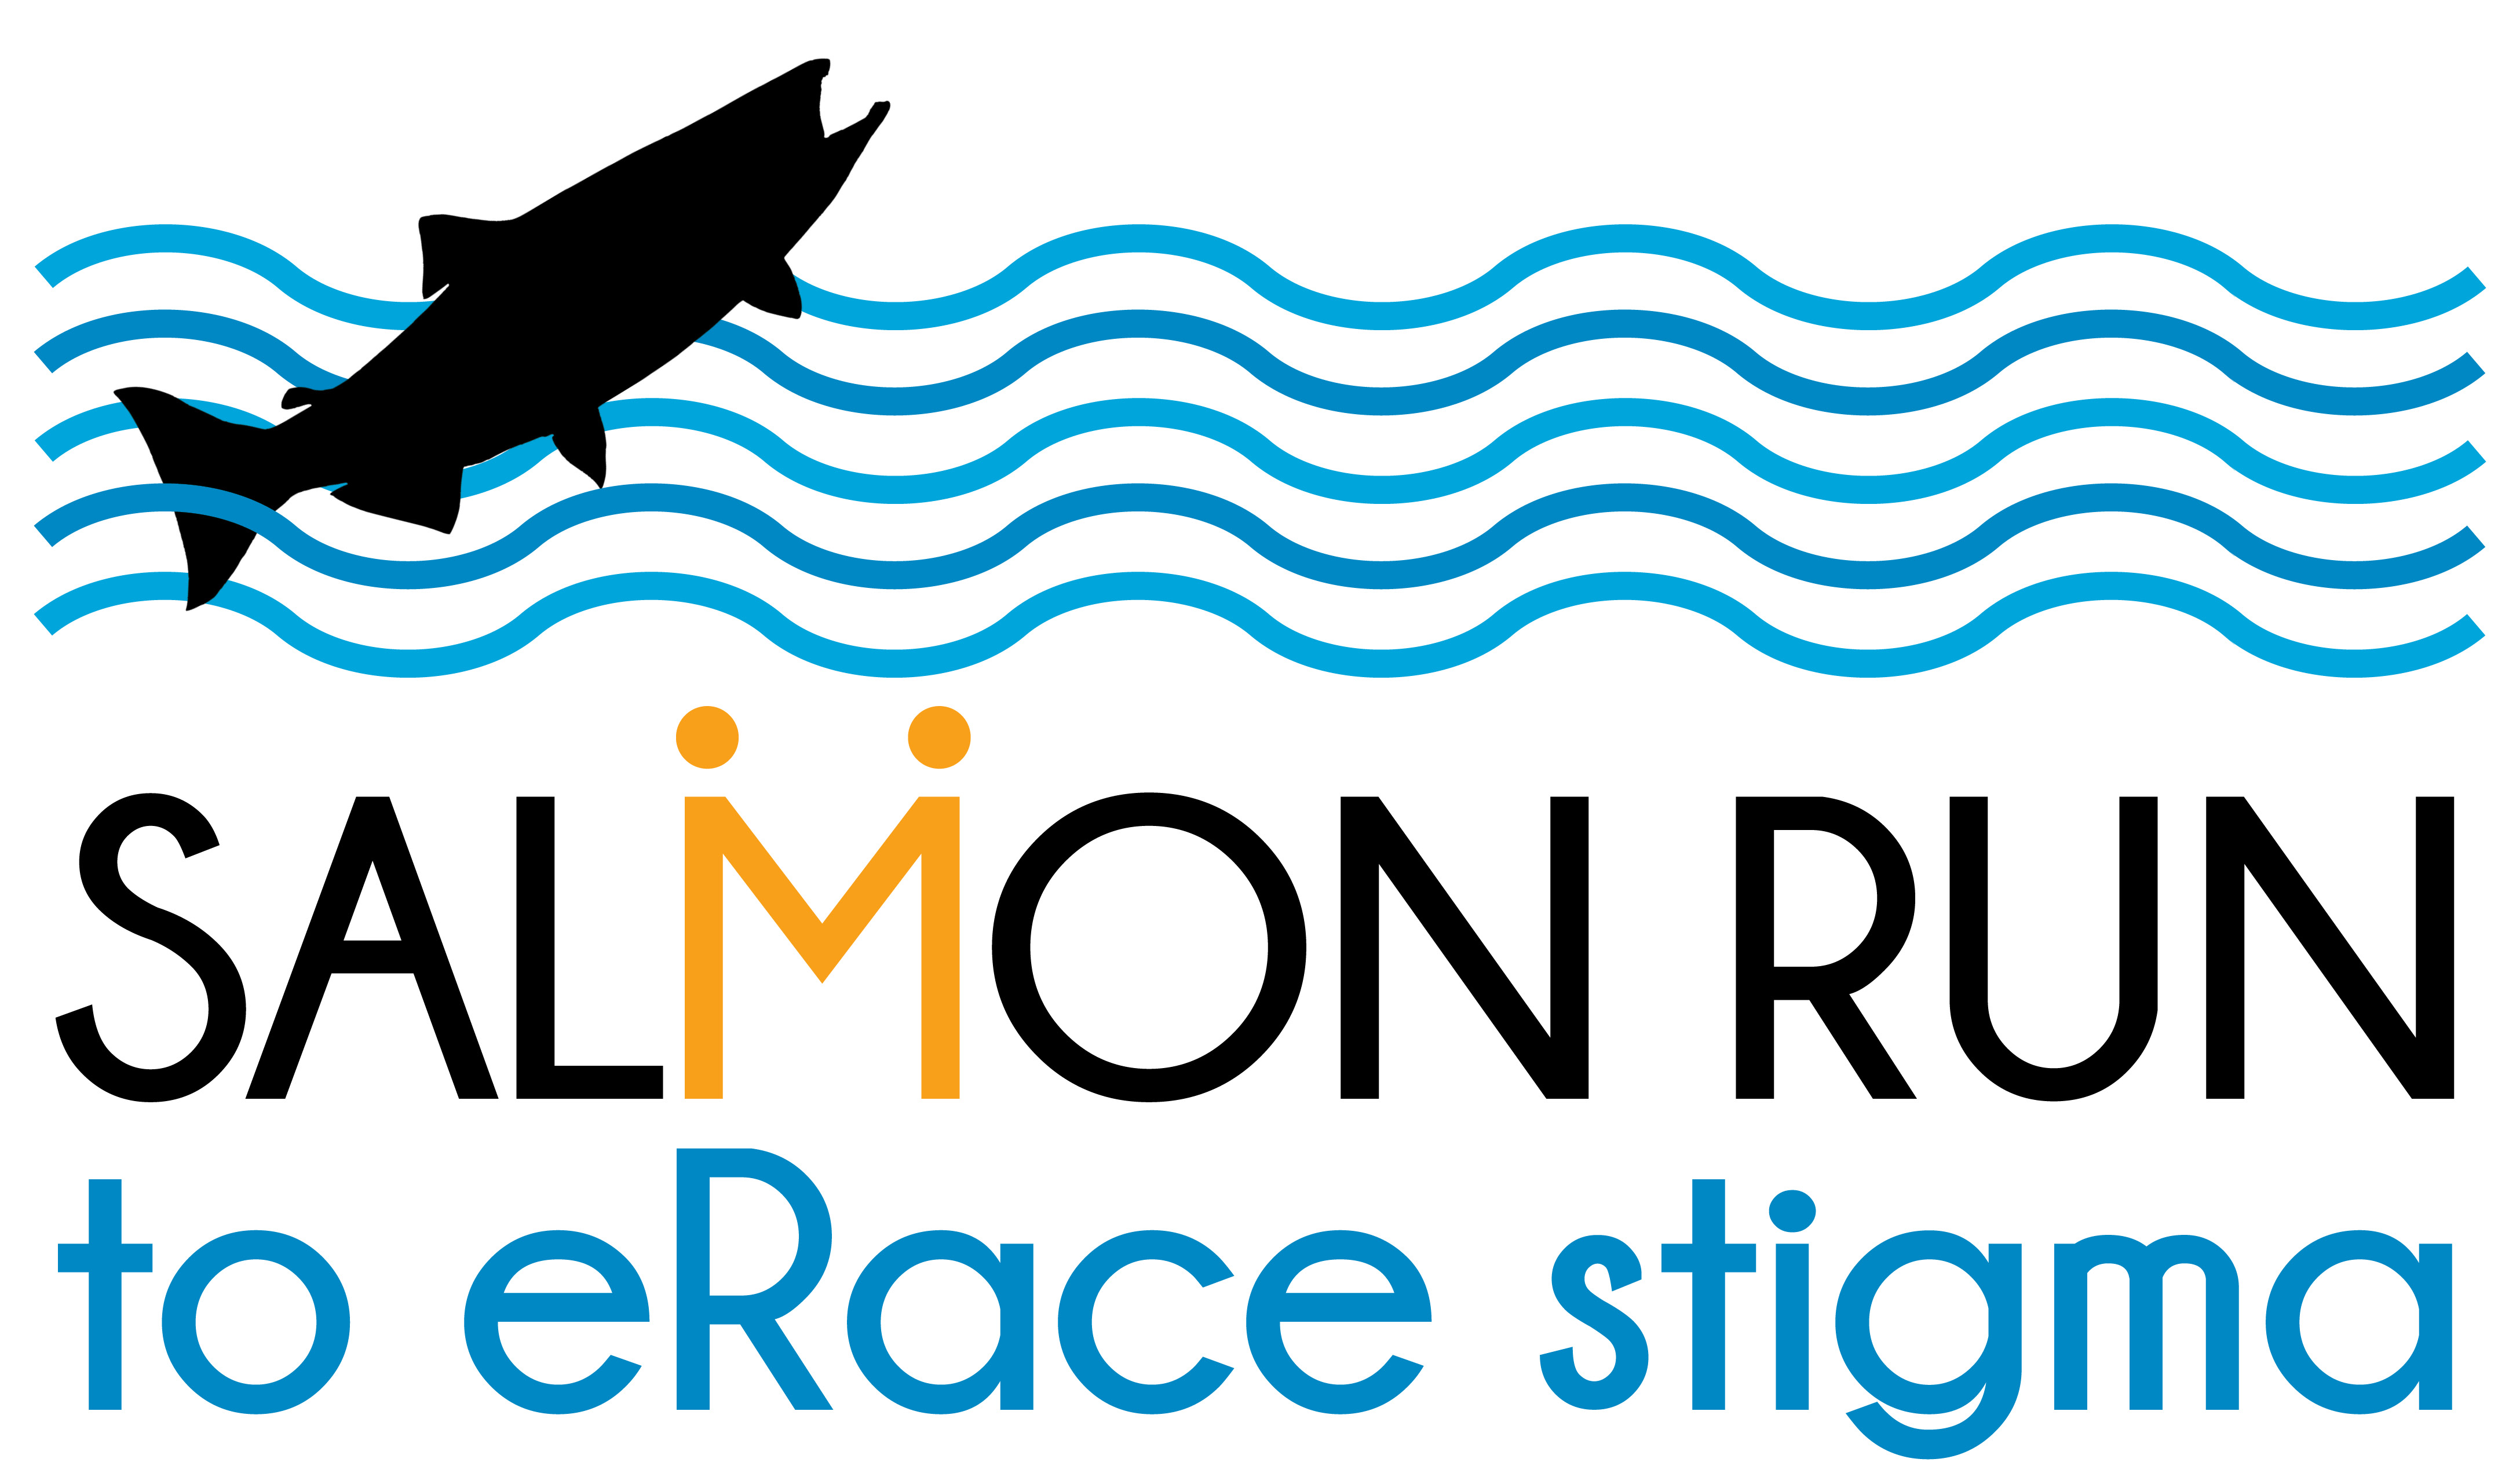 Salmon Run logo